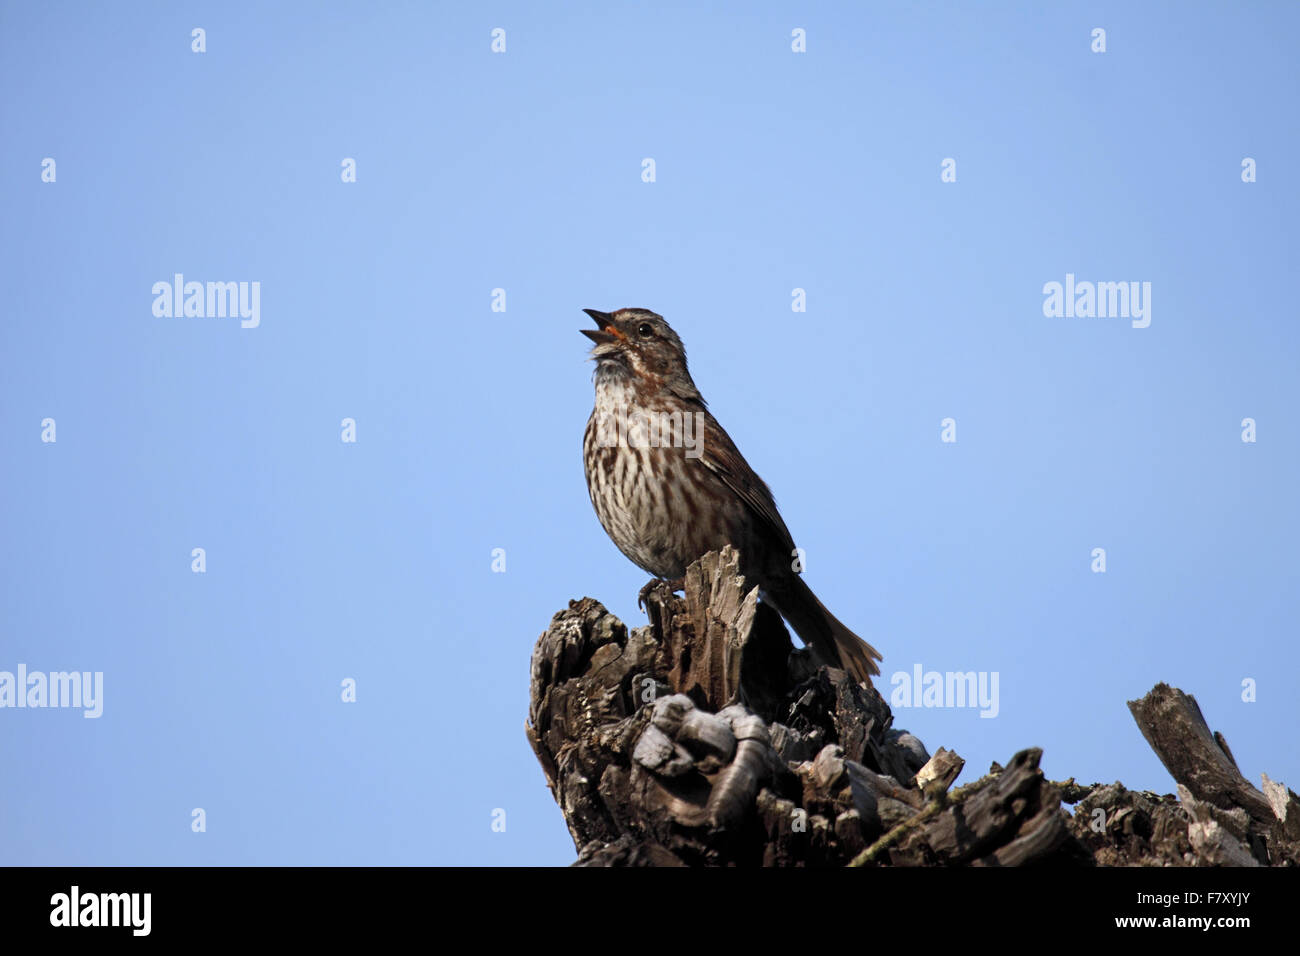 Song sparrow singing in Alberta Canada Stock Photo: 90946883